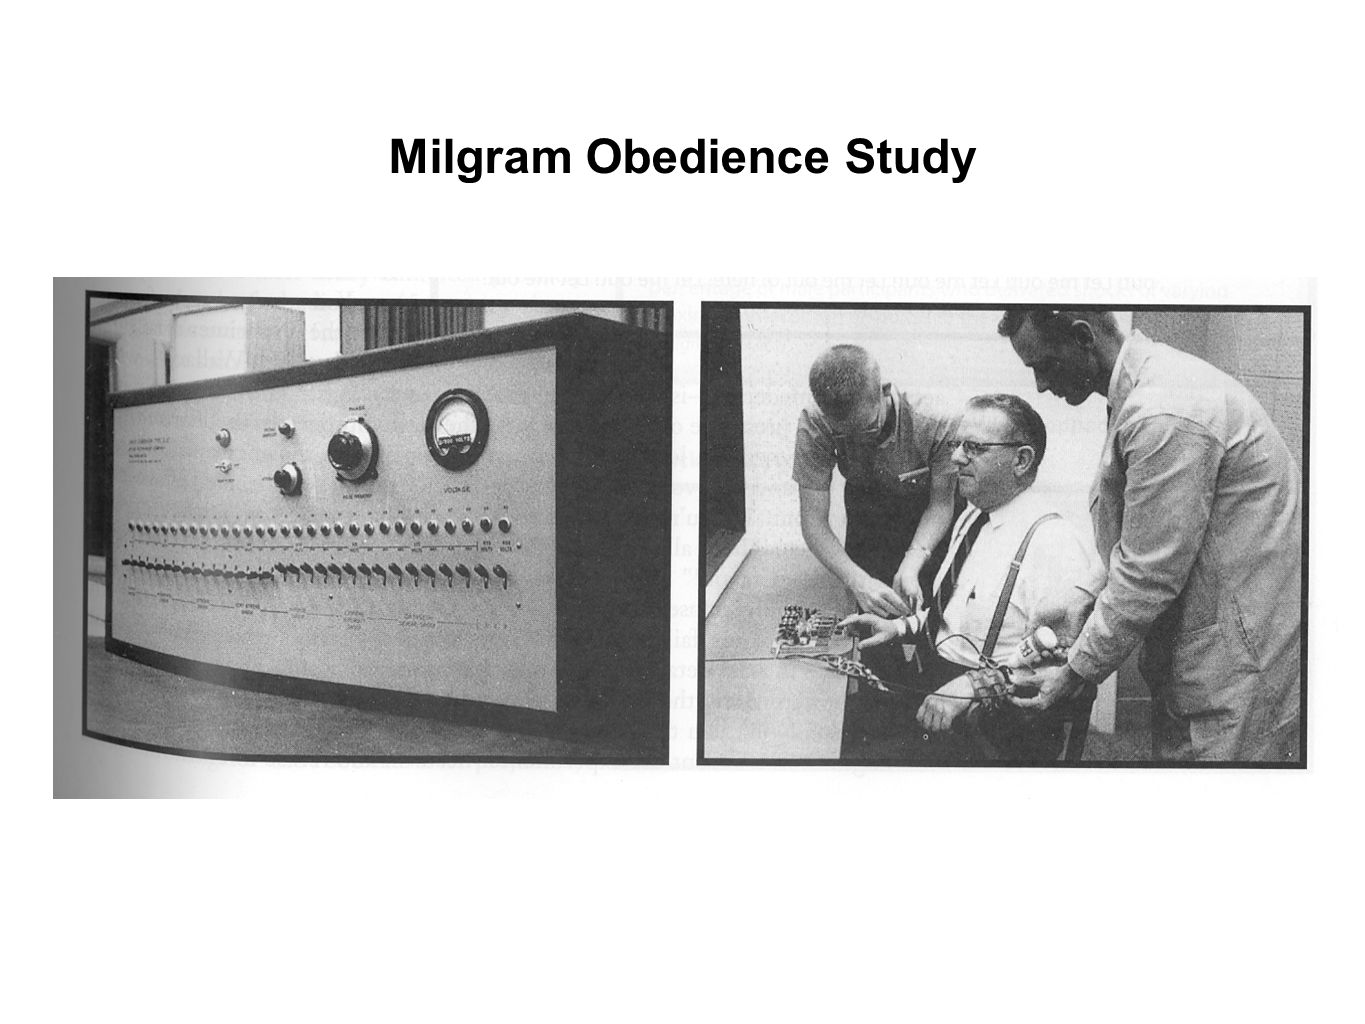 milgram behavioural study of obedience Milgram's (1963) original obedience study is, perhaps, the best known product of   milgram's study was actually one in a series of experiments (milgram, 1963,  1965a,  situational definitions and self-perceptions into behavioral obedience.